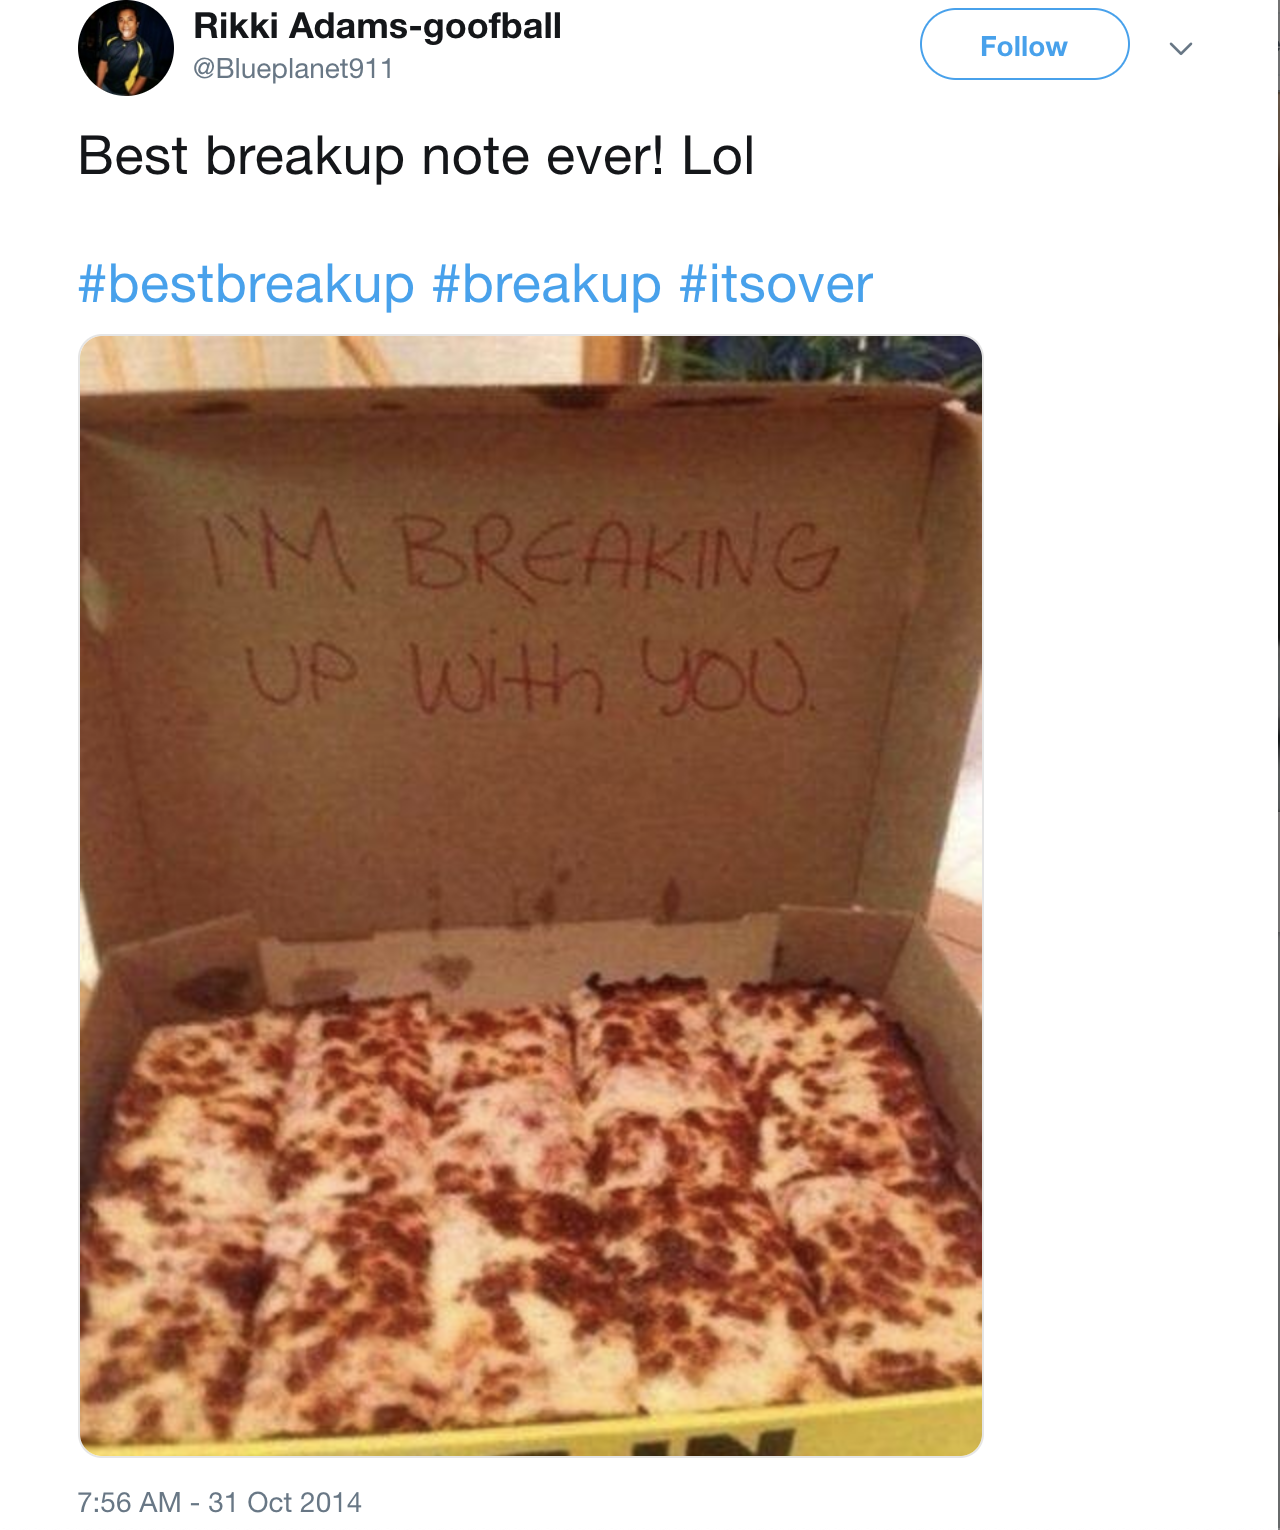 It's Not Delivery It's A Breakup